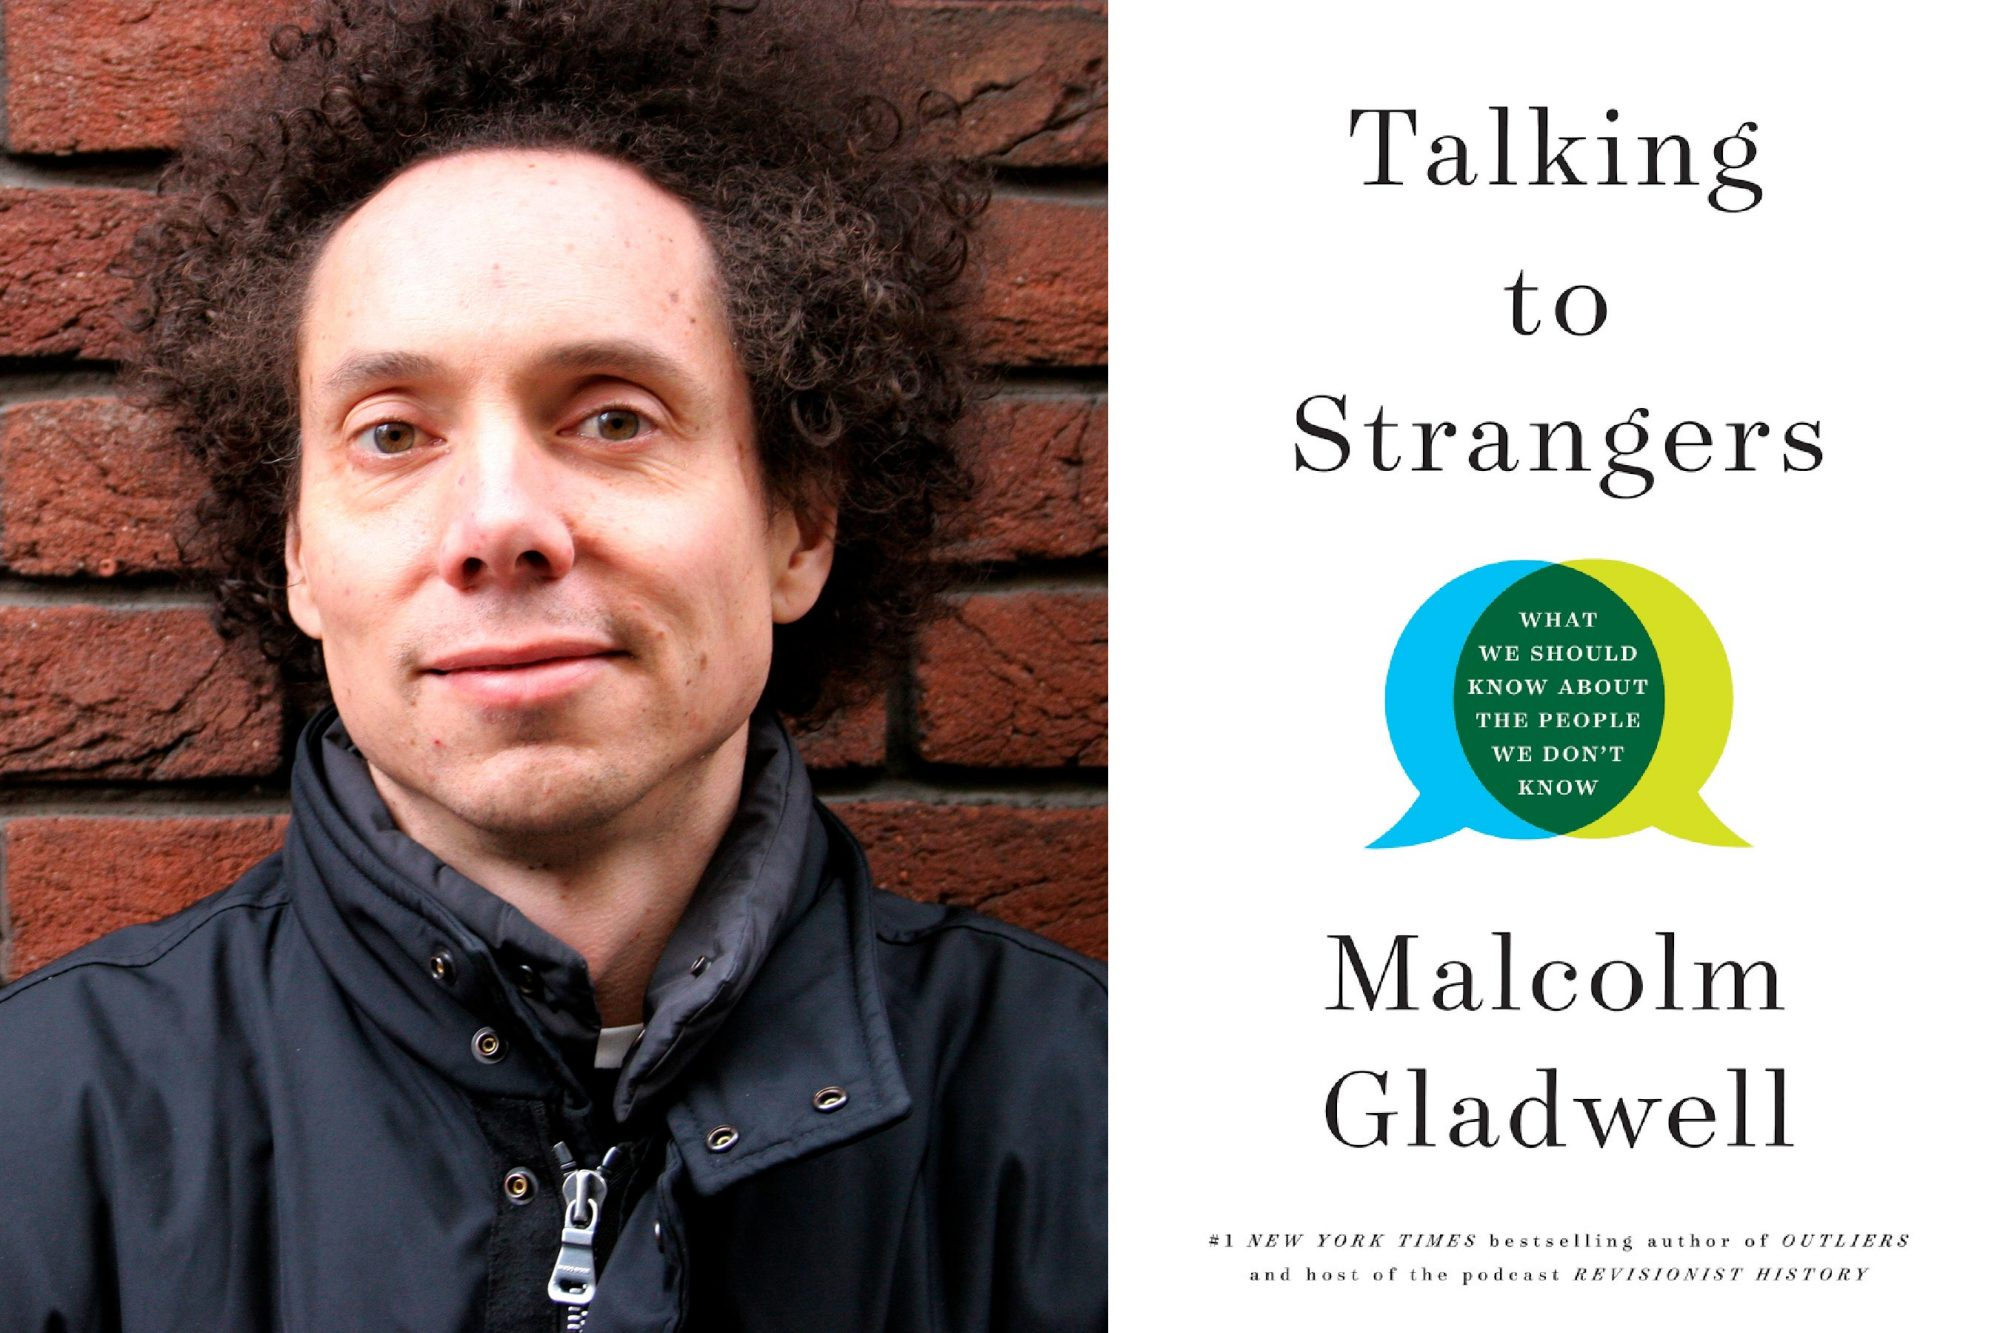 Malcolm Gladwell / Talking to Strangers